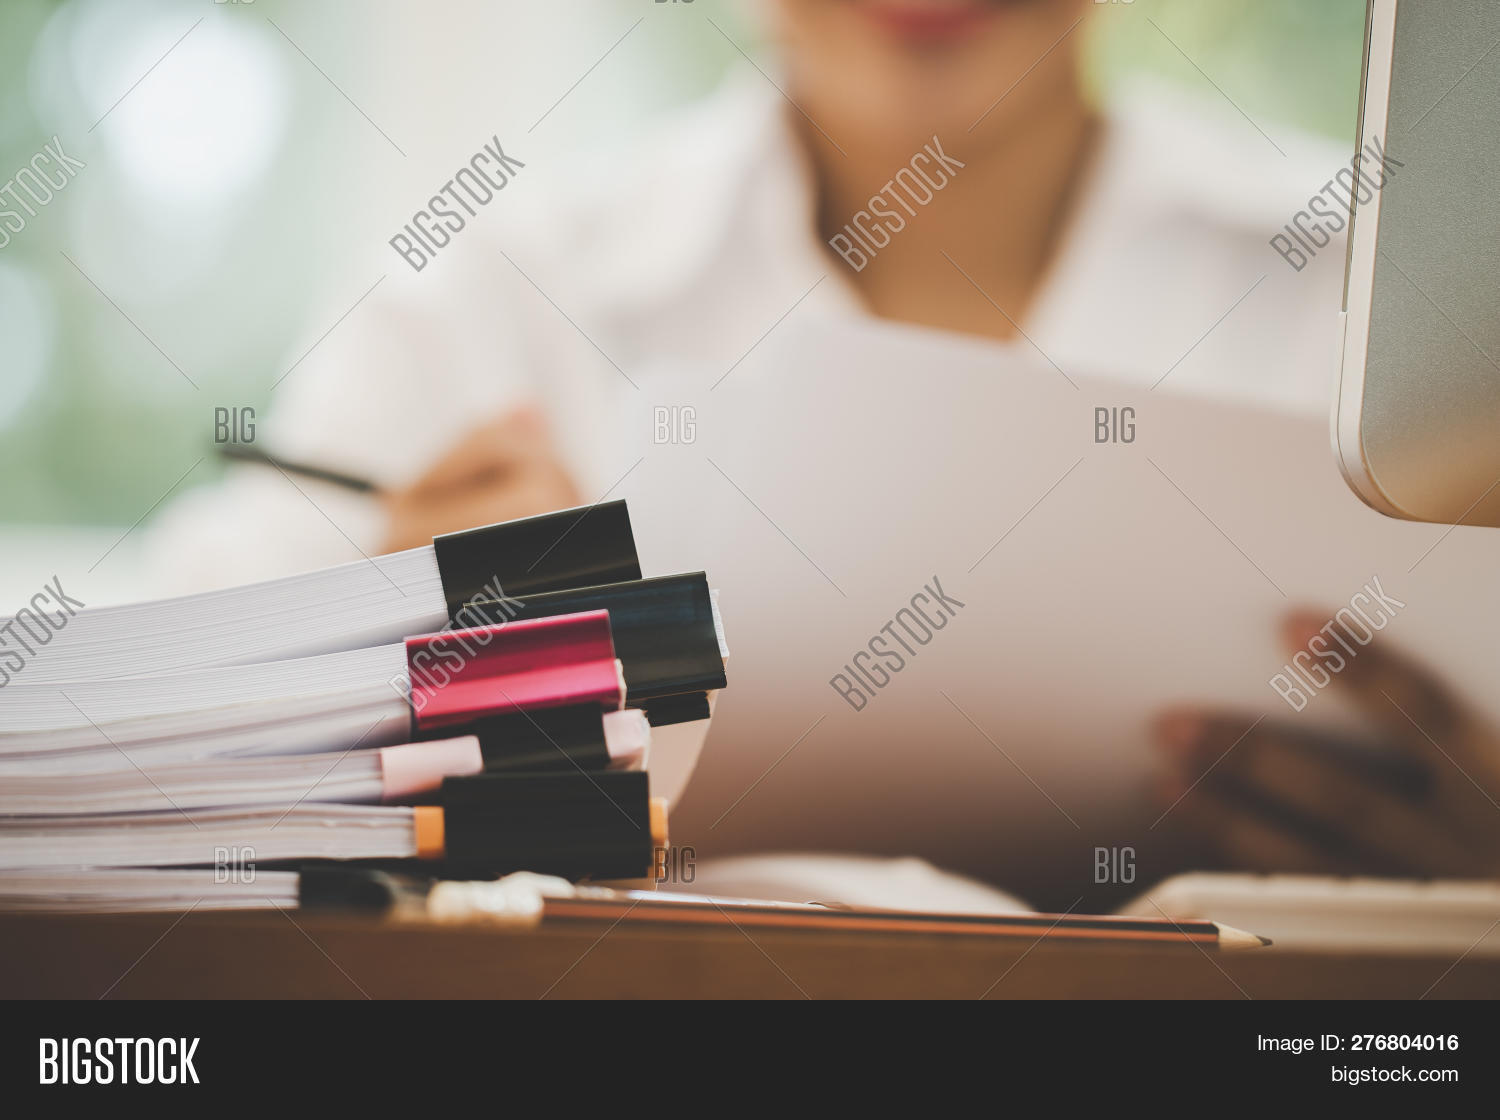 accounting,analysis,analytics,asian,business,busy,chart,check,commercial,computer,consultant,consulting,corporate,document,documentation,education,employee,exam,file,finance,financial,flat,folder,fund,growth,hands,investigate,investment,laptop,law,lawyer,legal,magazine,manager,organization,overwork,paperwork,pen,print,reading,report,reporting,research,stack,statement,statistics,study,work,workload,workplace